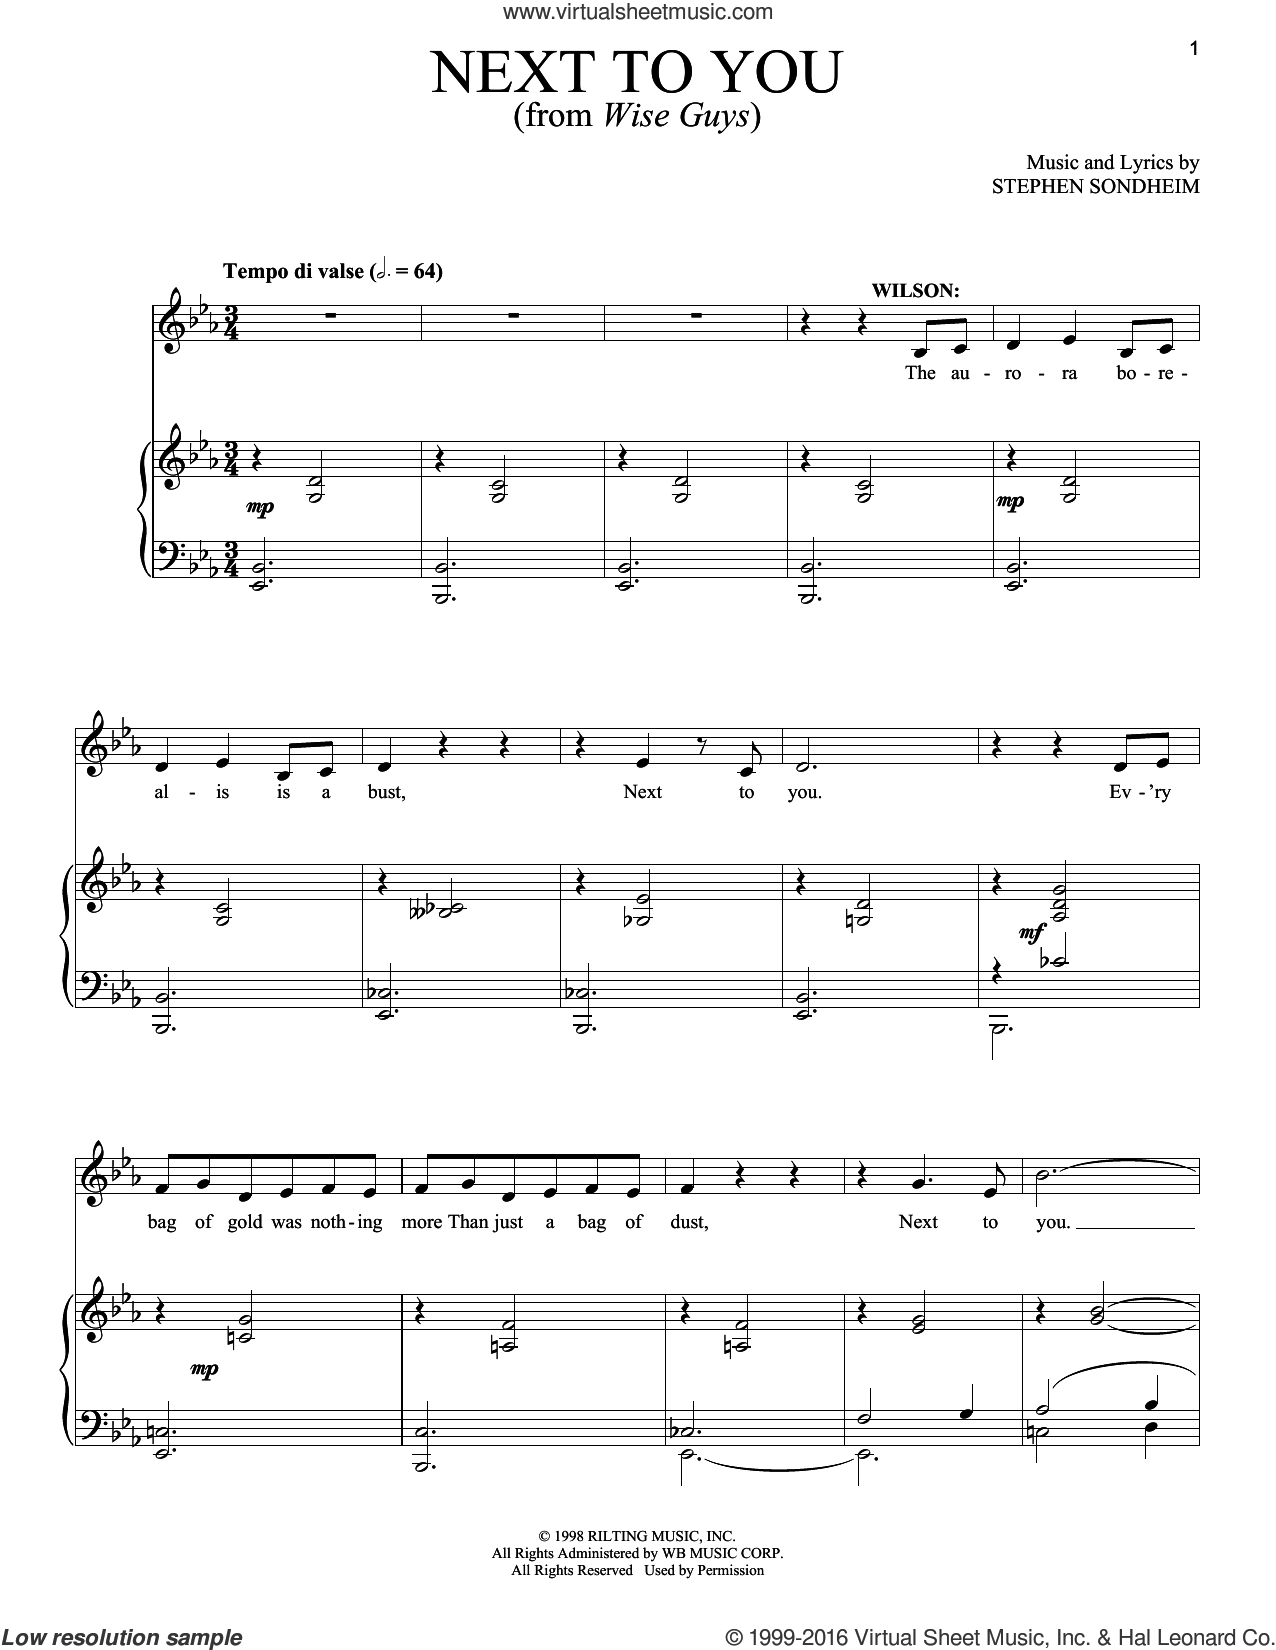 Next To You sheet music for voice and piano by Stephen Sondheim. Score Image Preview.